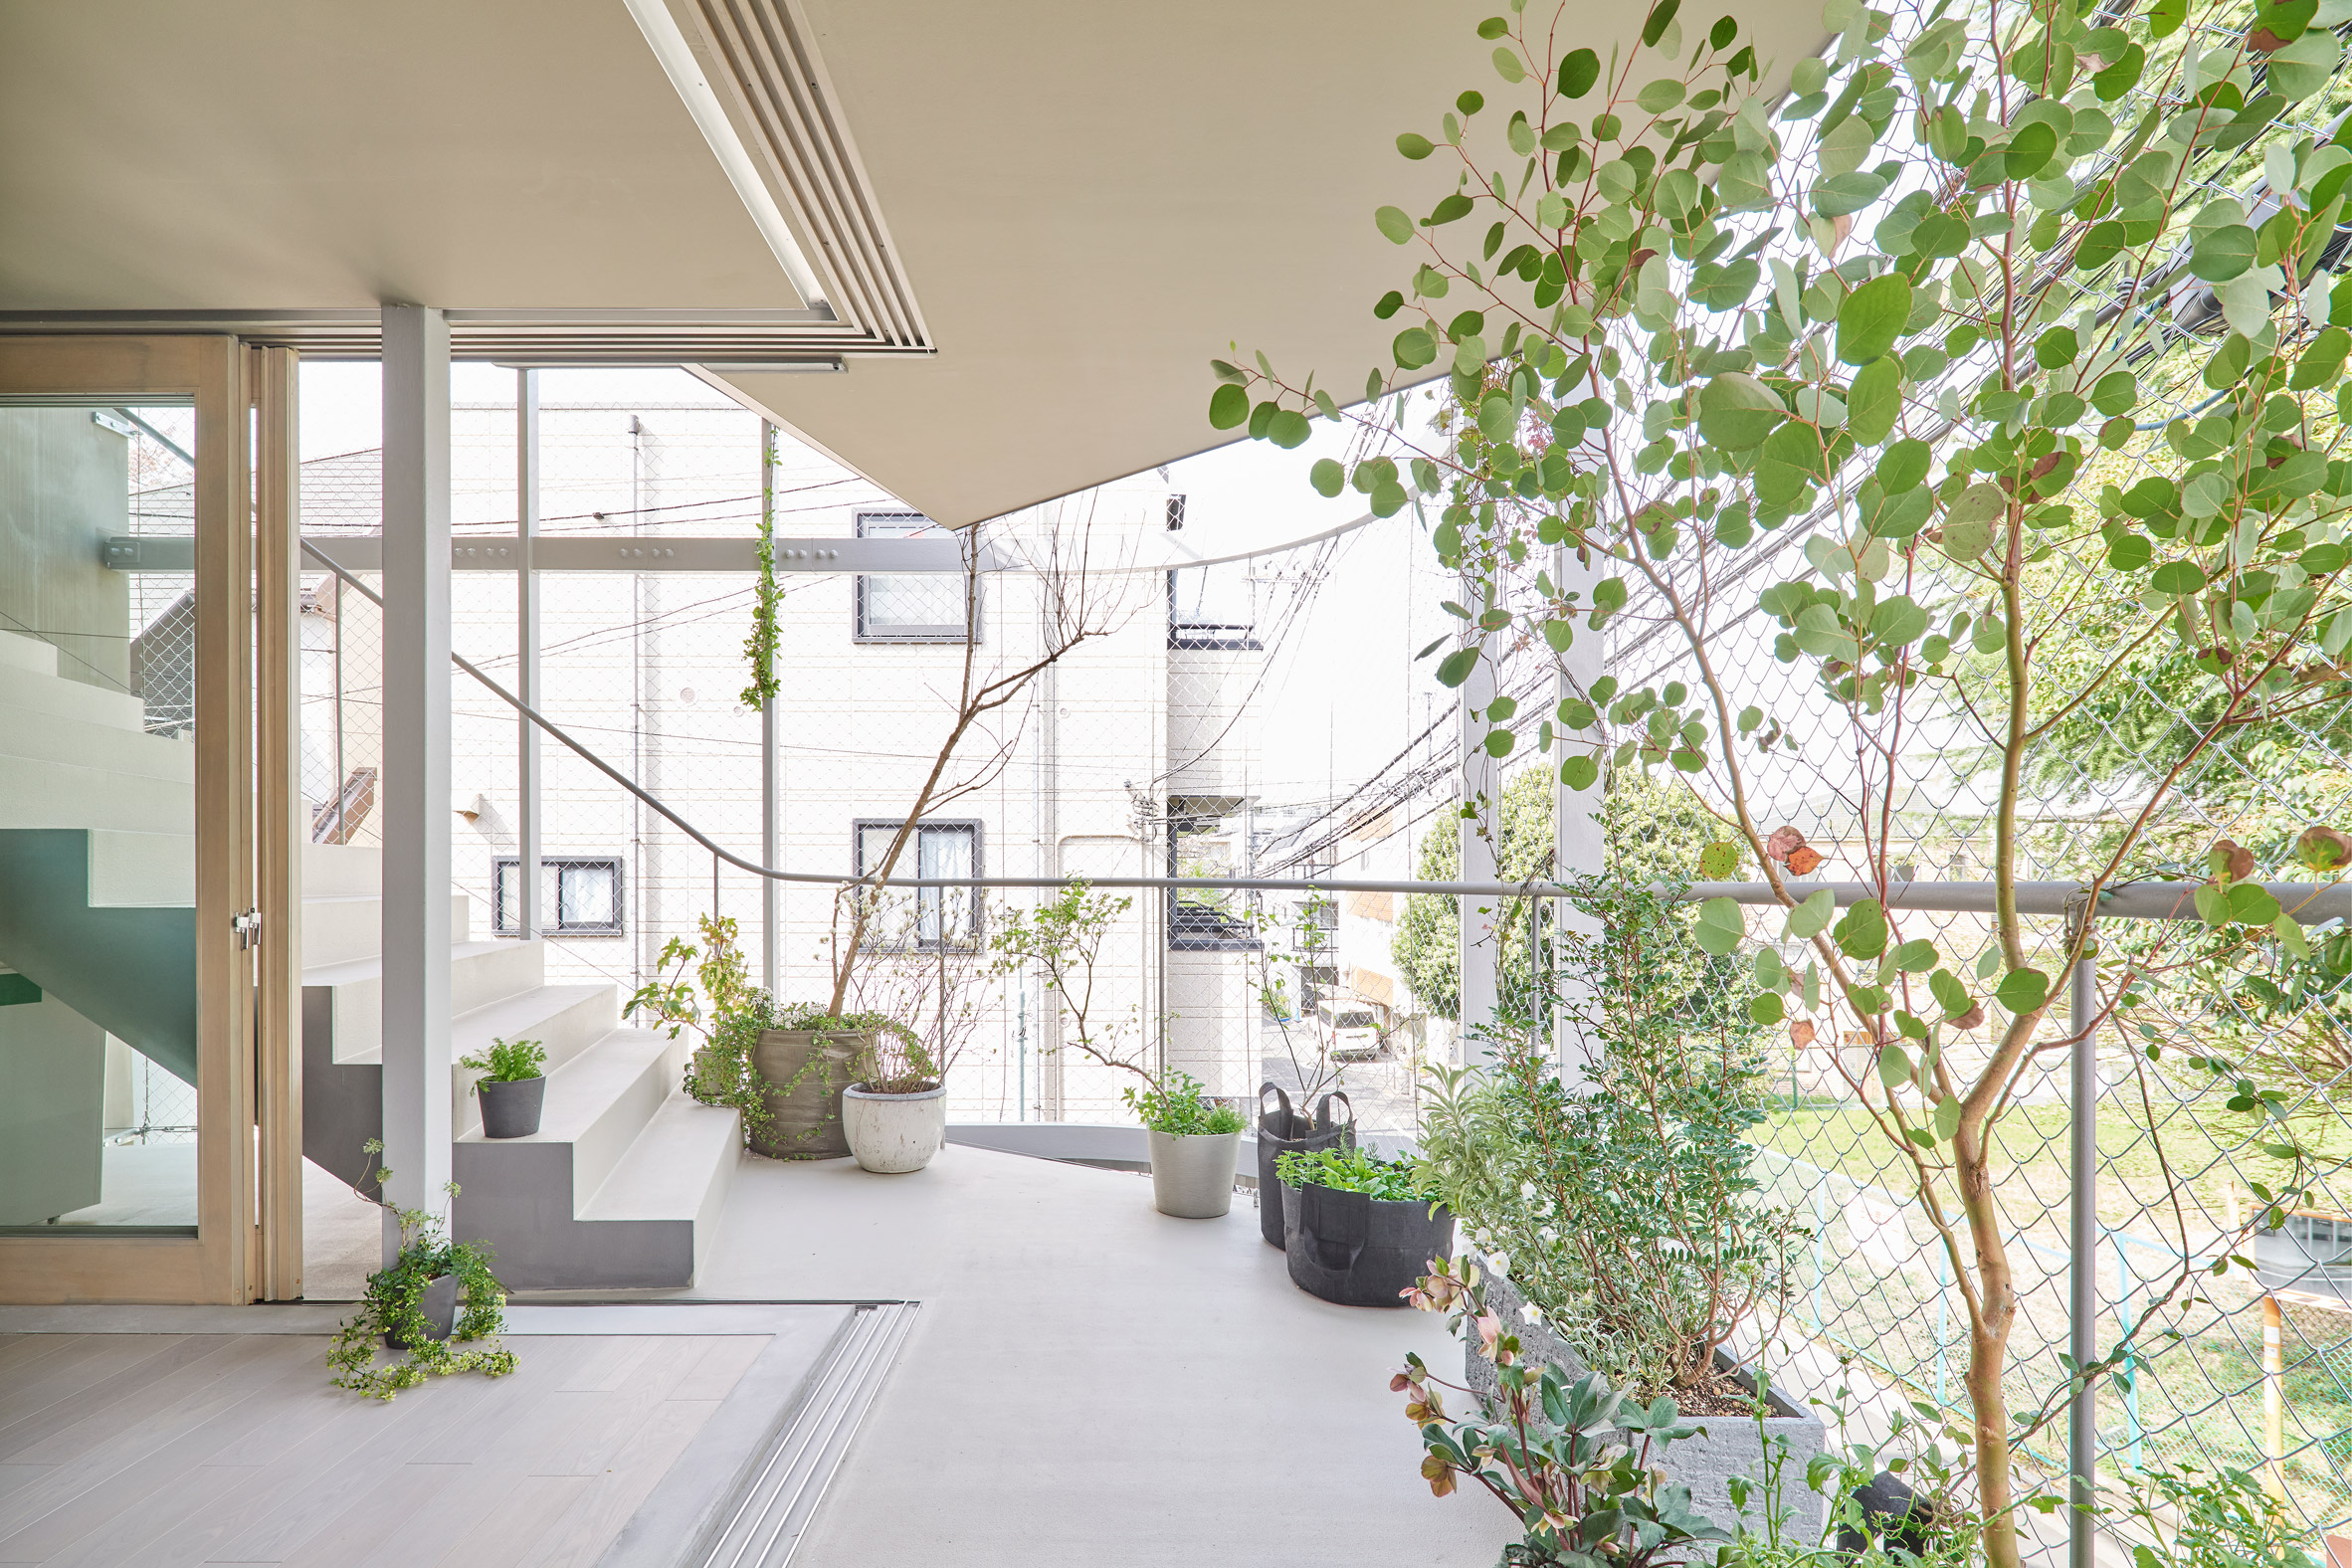 A plant-filled balcony